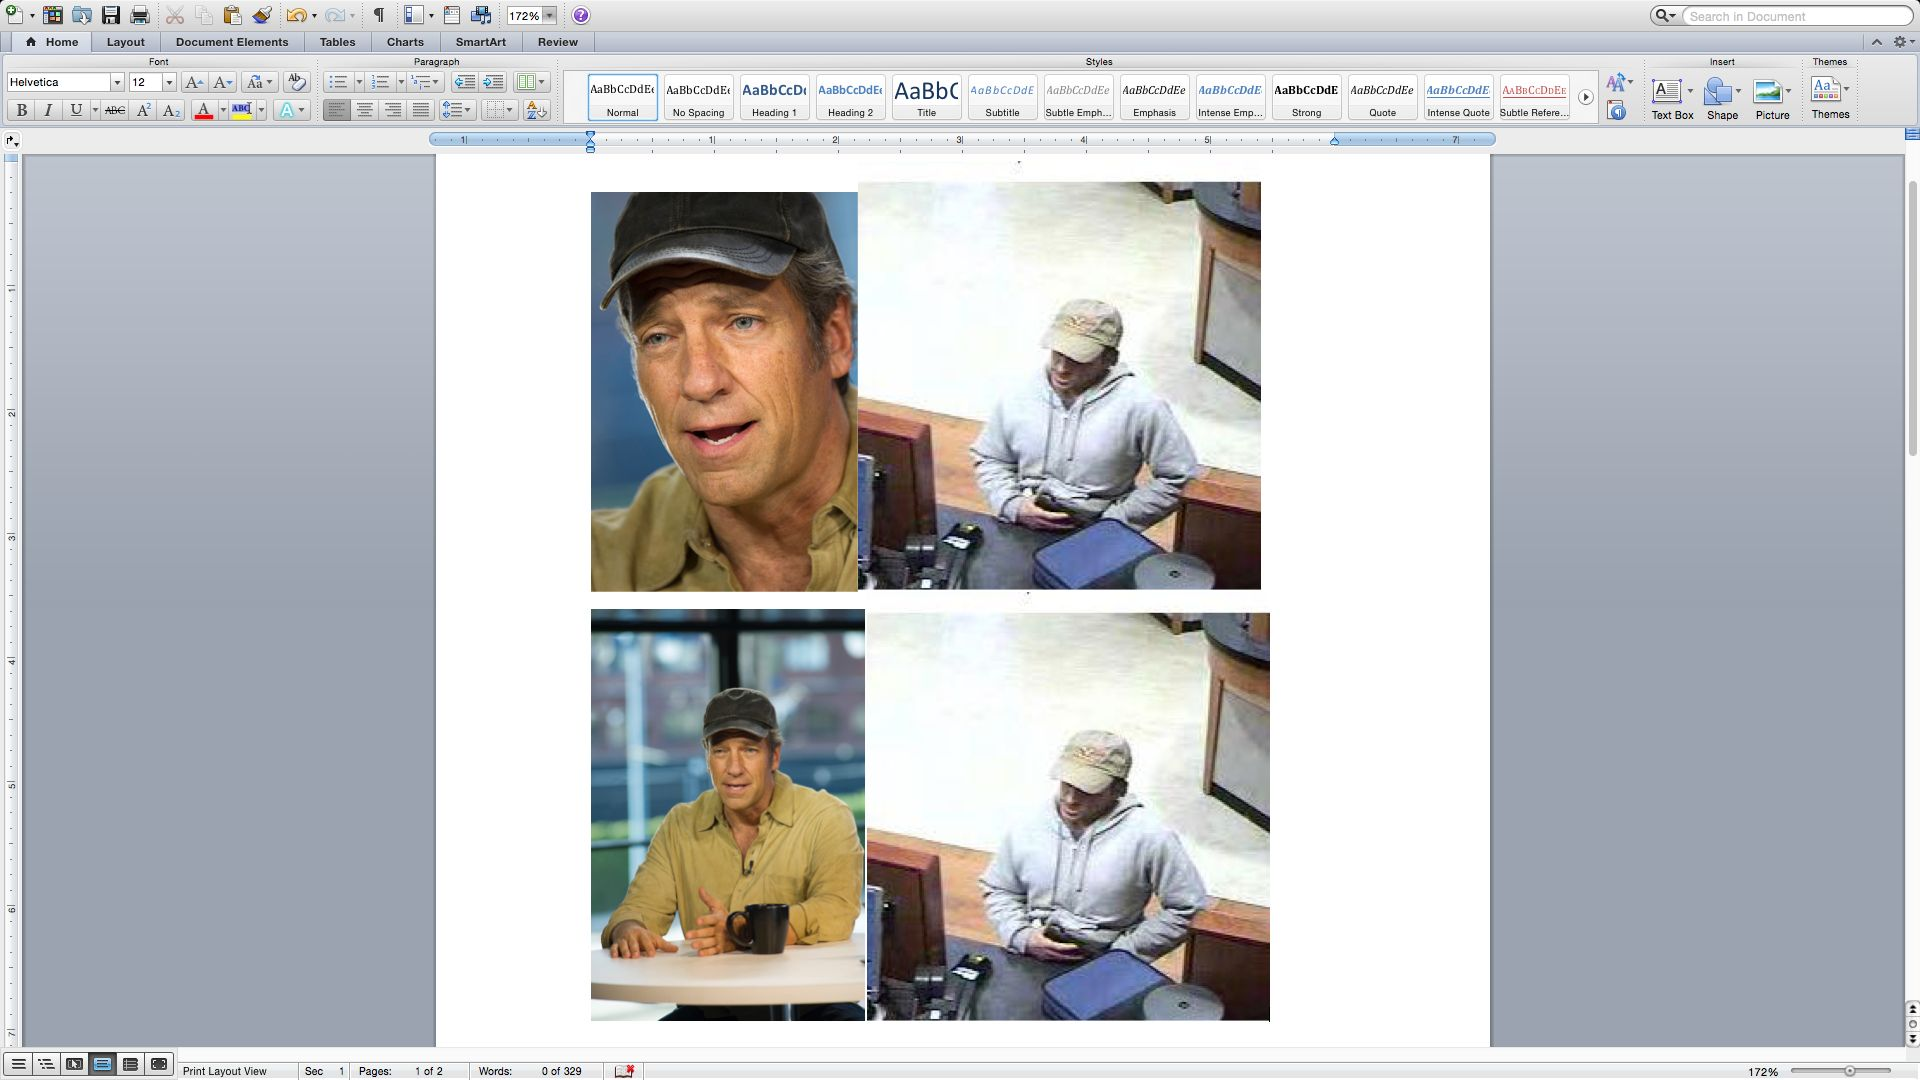 """Mike Rowe, host of TV show """"Dirty Jobs,"""" has denied being an elusive Oregon bank robber after Internet finger pointing."""